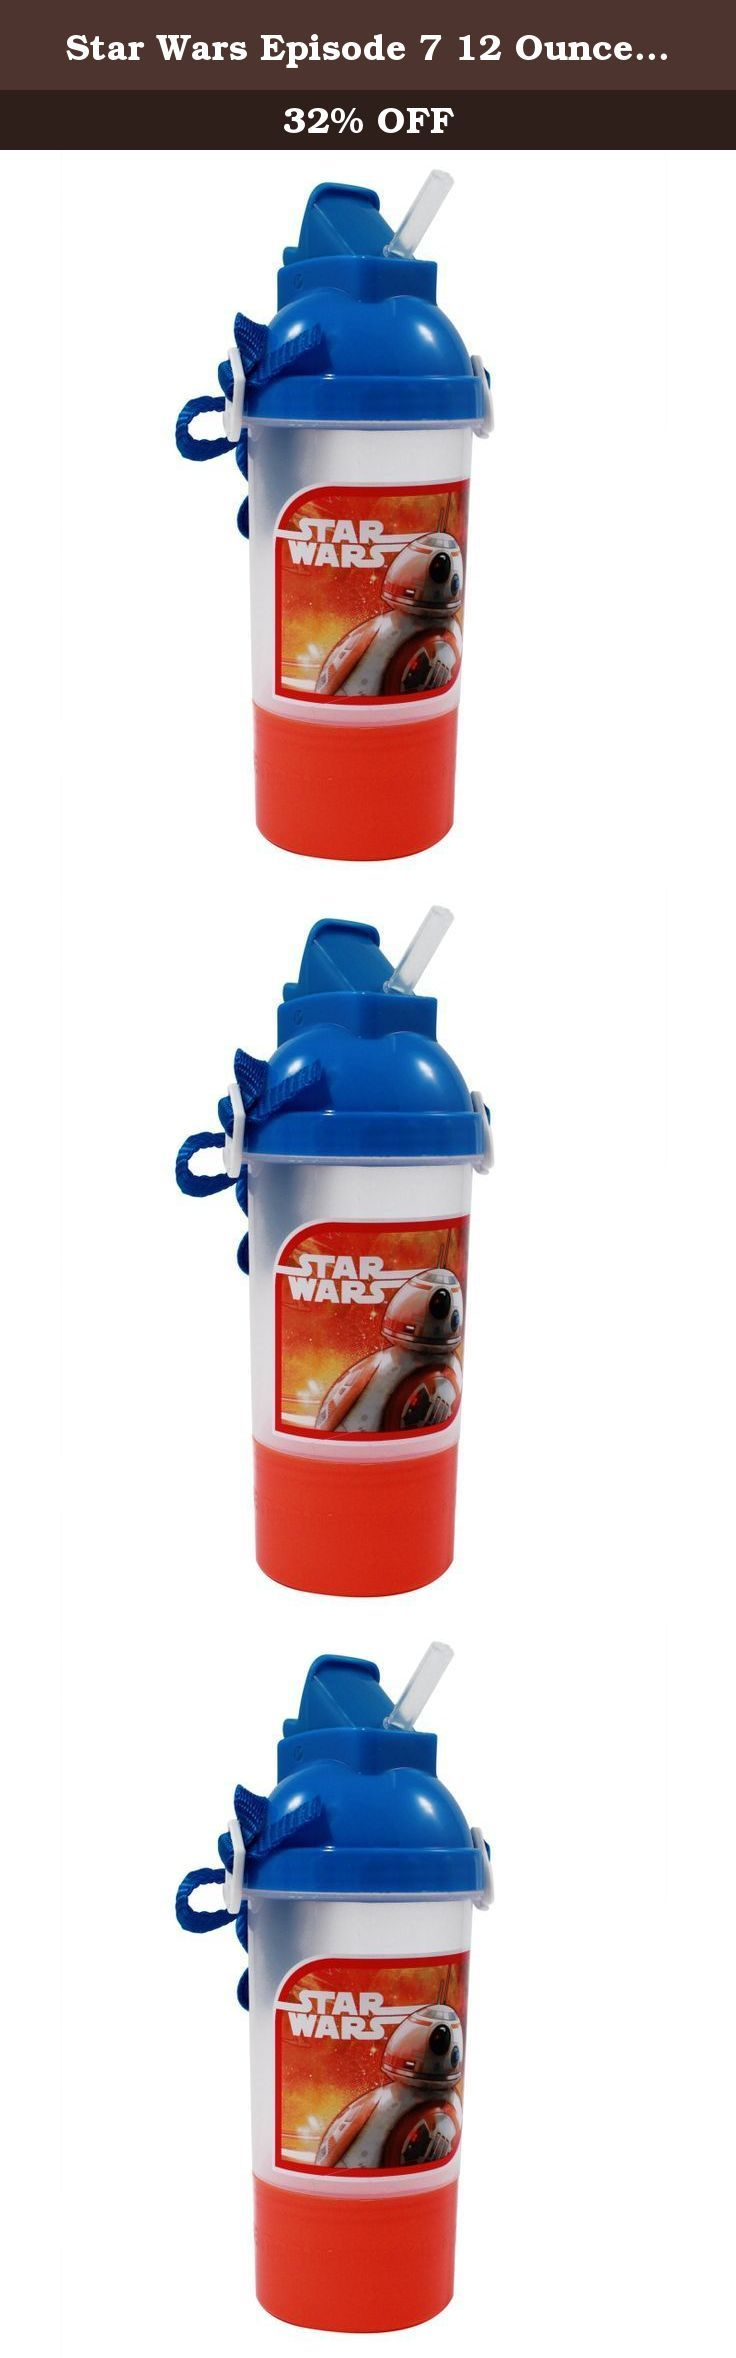 Star Wars Episode 7 12 Ounce Water Bottle and Snack Holder Canteen. Snack time is easy with this Star Wars Episode 7 12 Ounce water bottle and snack storage container. Ideal for Star Wars fans of any age, this water bottle and snack storage container will allow you to easily bring along a drink and snack wherever your day takes you. This would be perfect for kids to take to school for lunch or snack time. The water bottle holds 12 ounces of a drink of your preference and is 8 inches in...